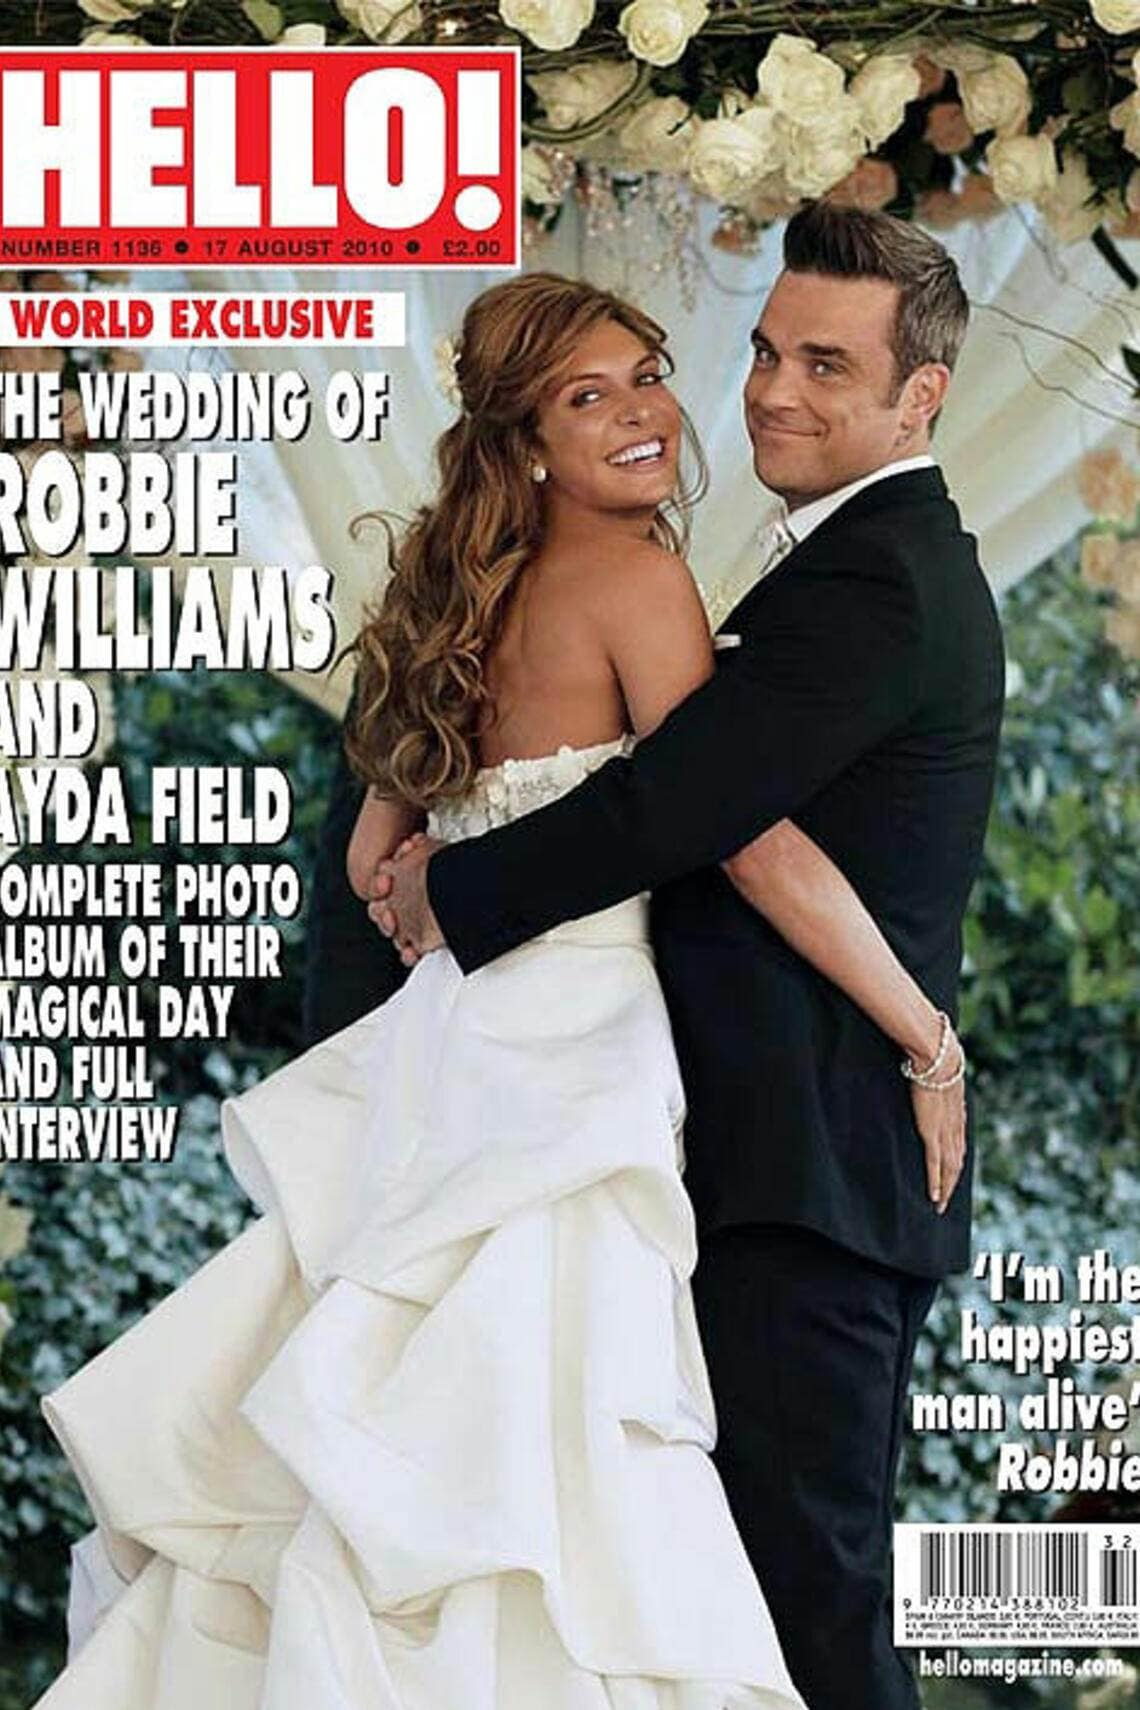 Robbie Ayda Williams Hochzeit Hollywood